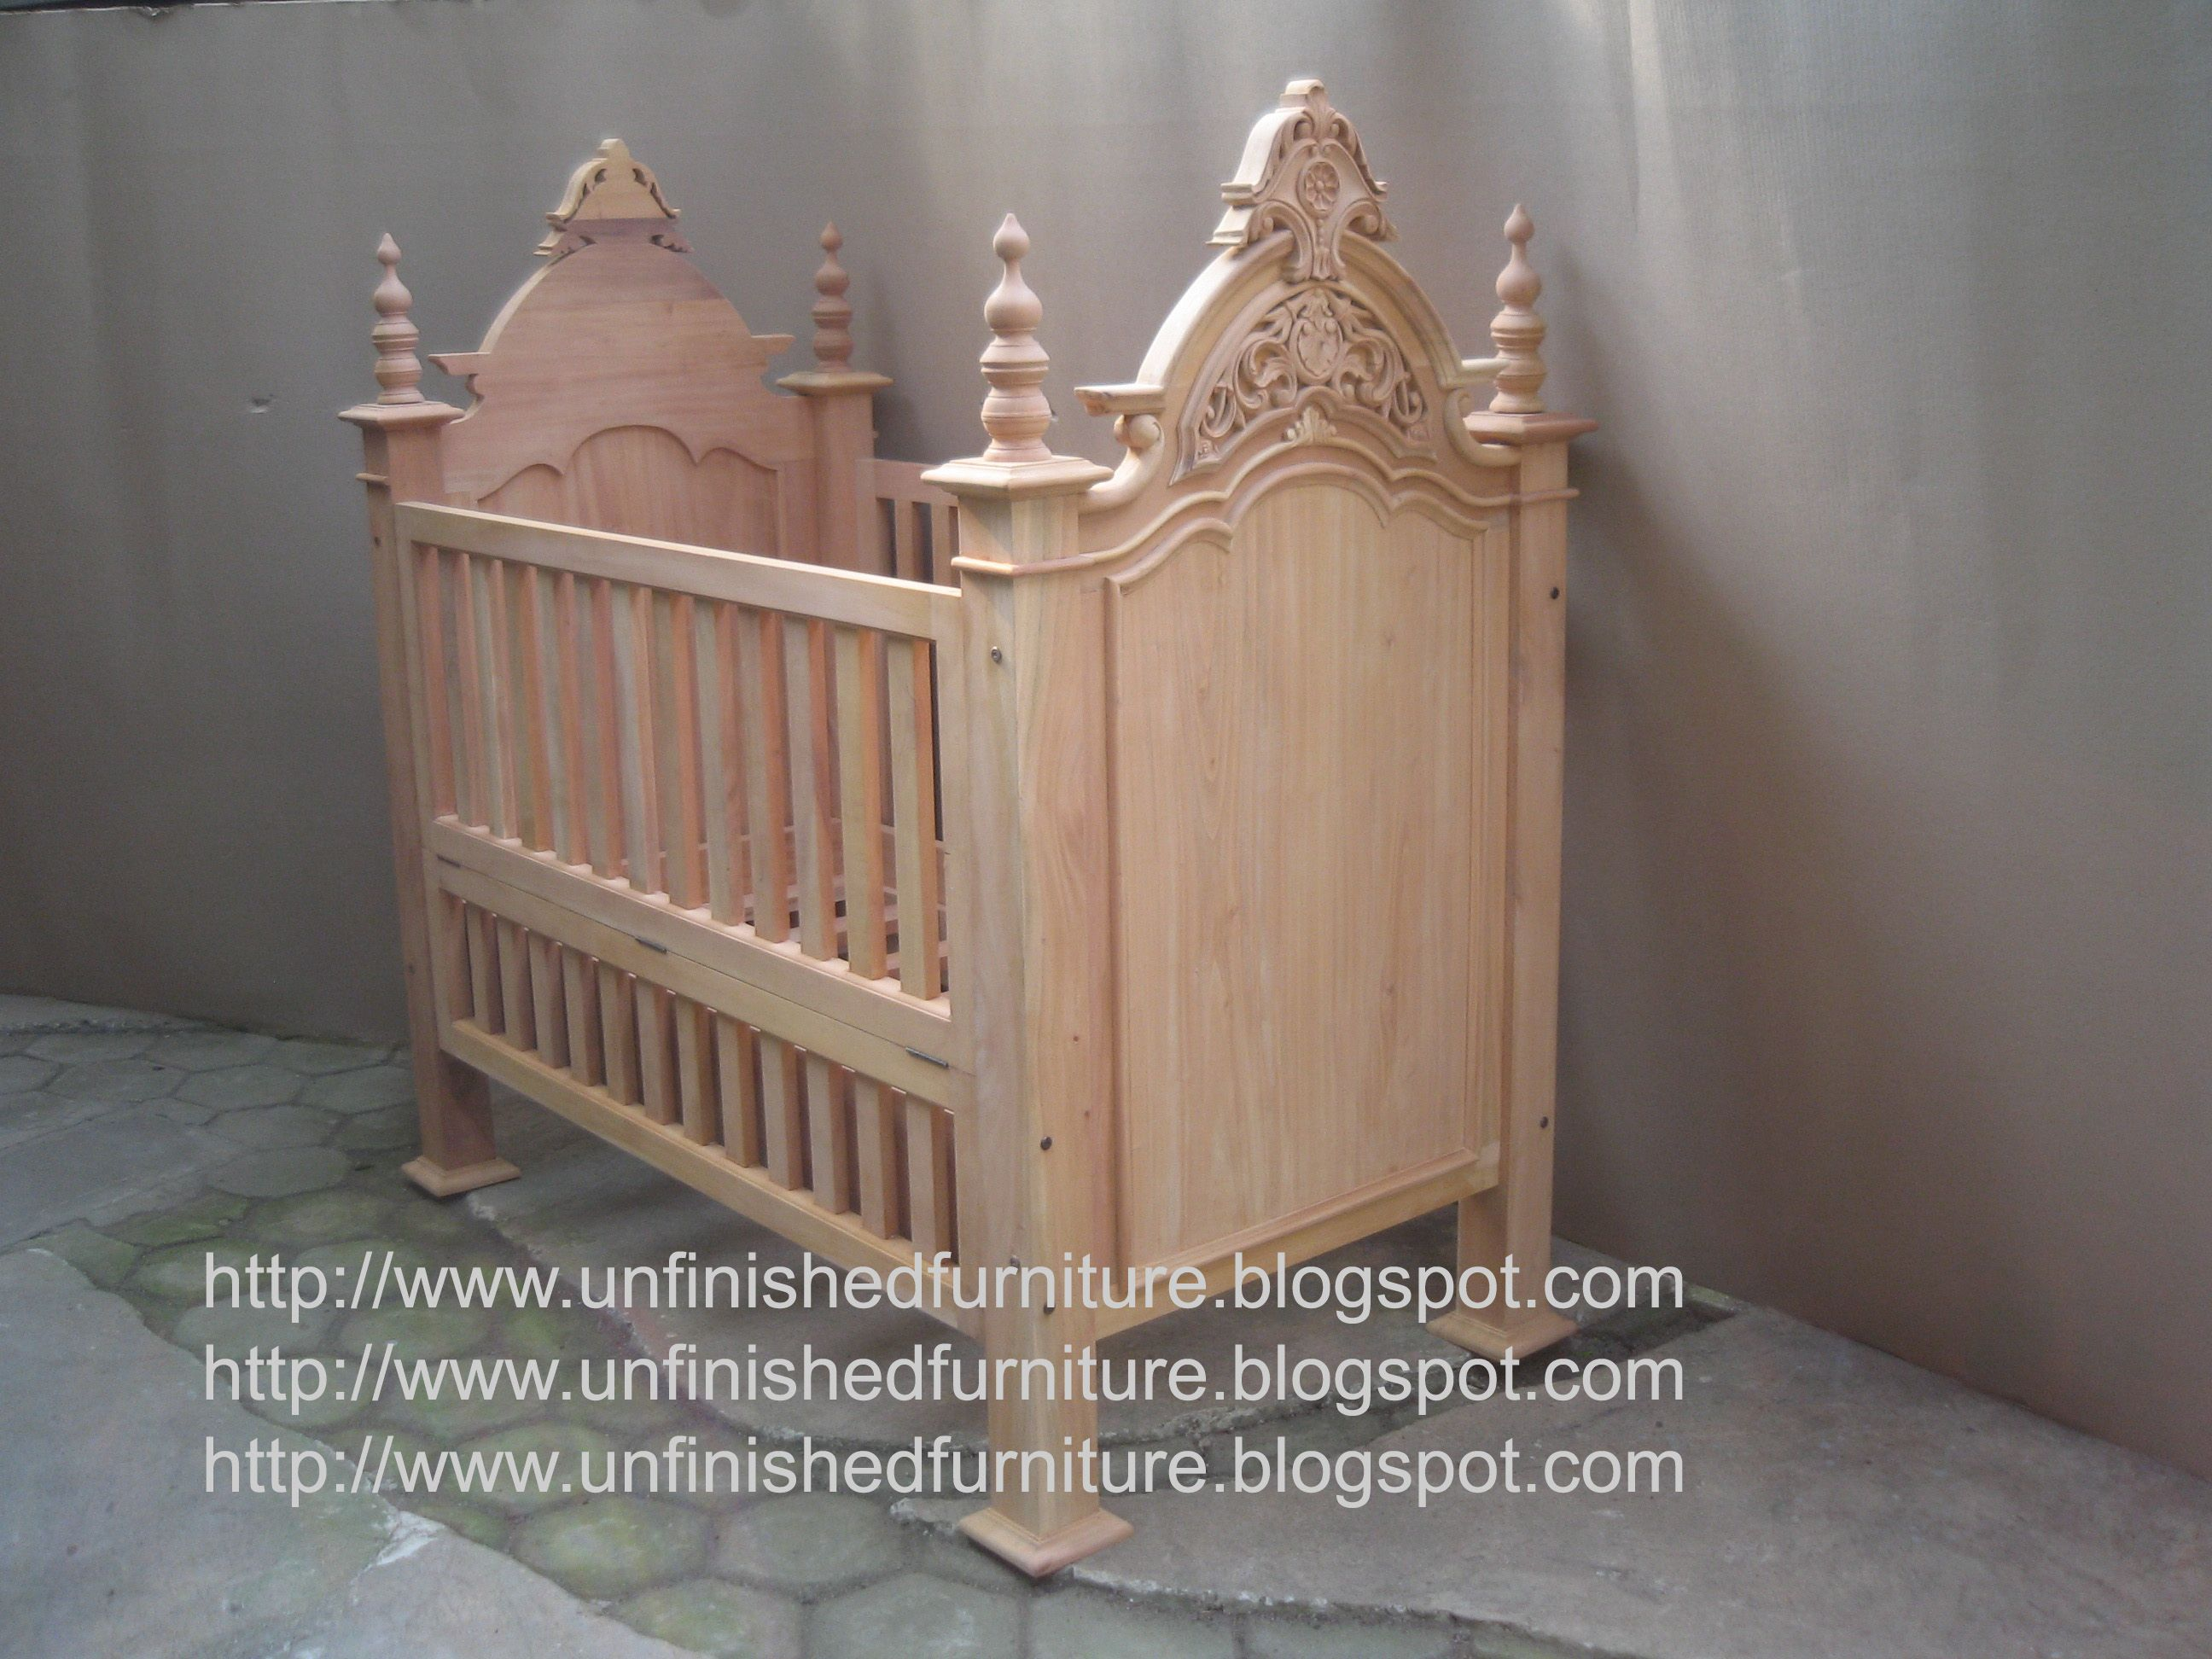 Unfinished crib for sale - Unfinished Mahogany Furniture Victorian Crib Baby Bed Made Of Fine Solid Kiln